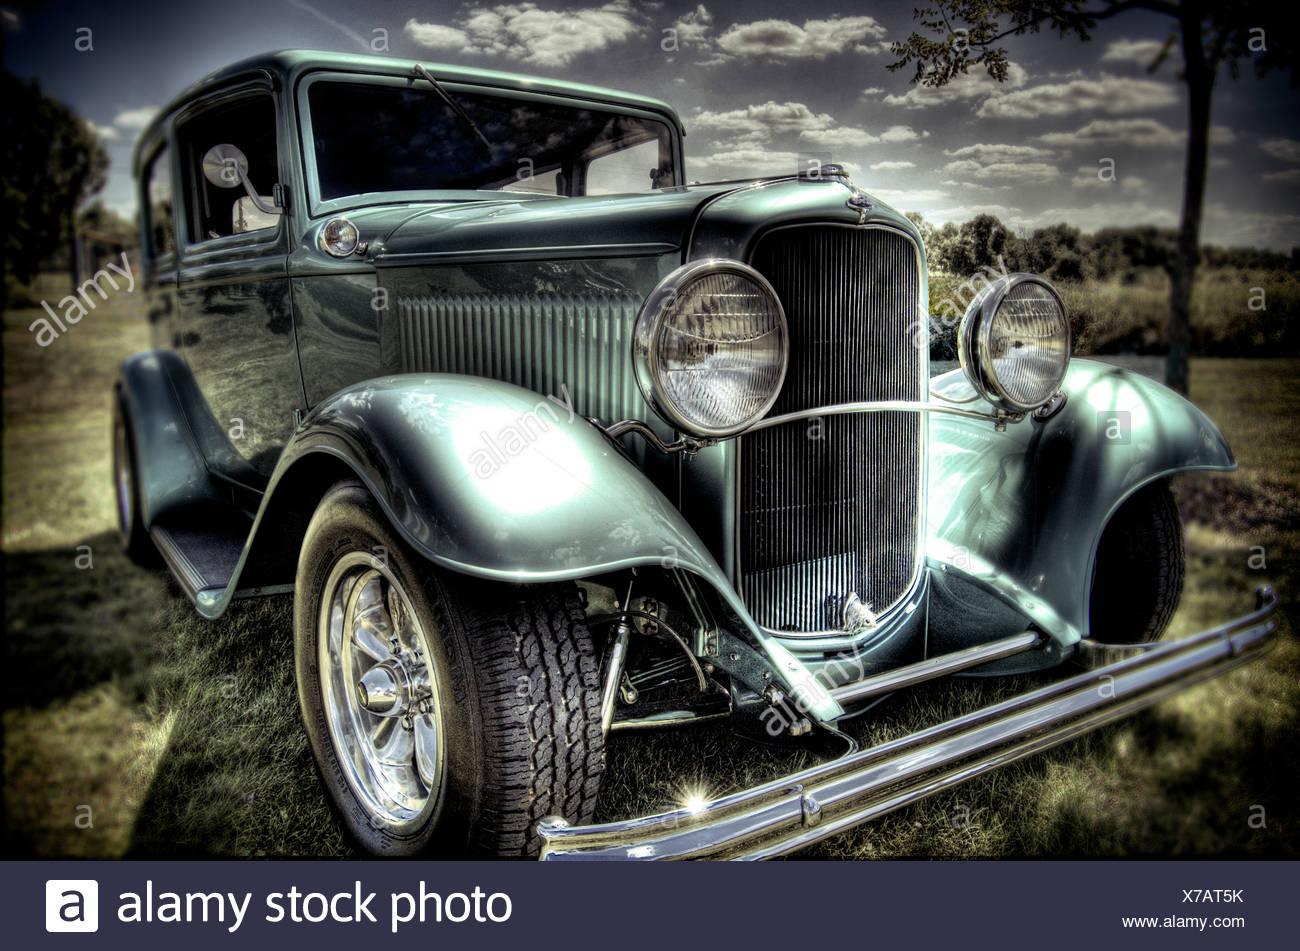 Custom car in the countryside - Stock Image